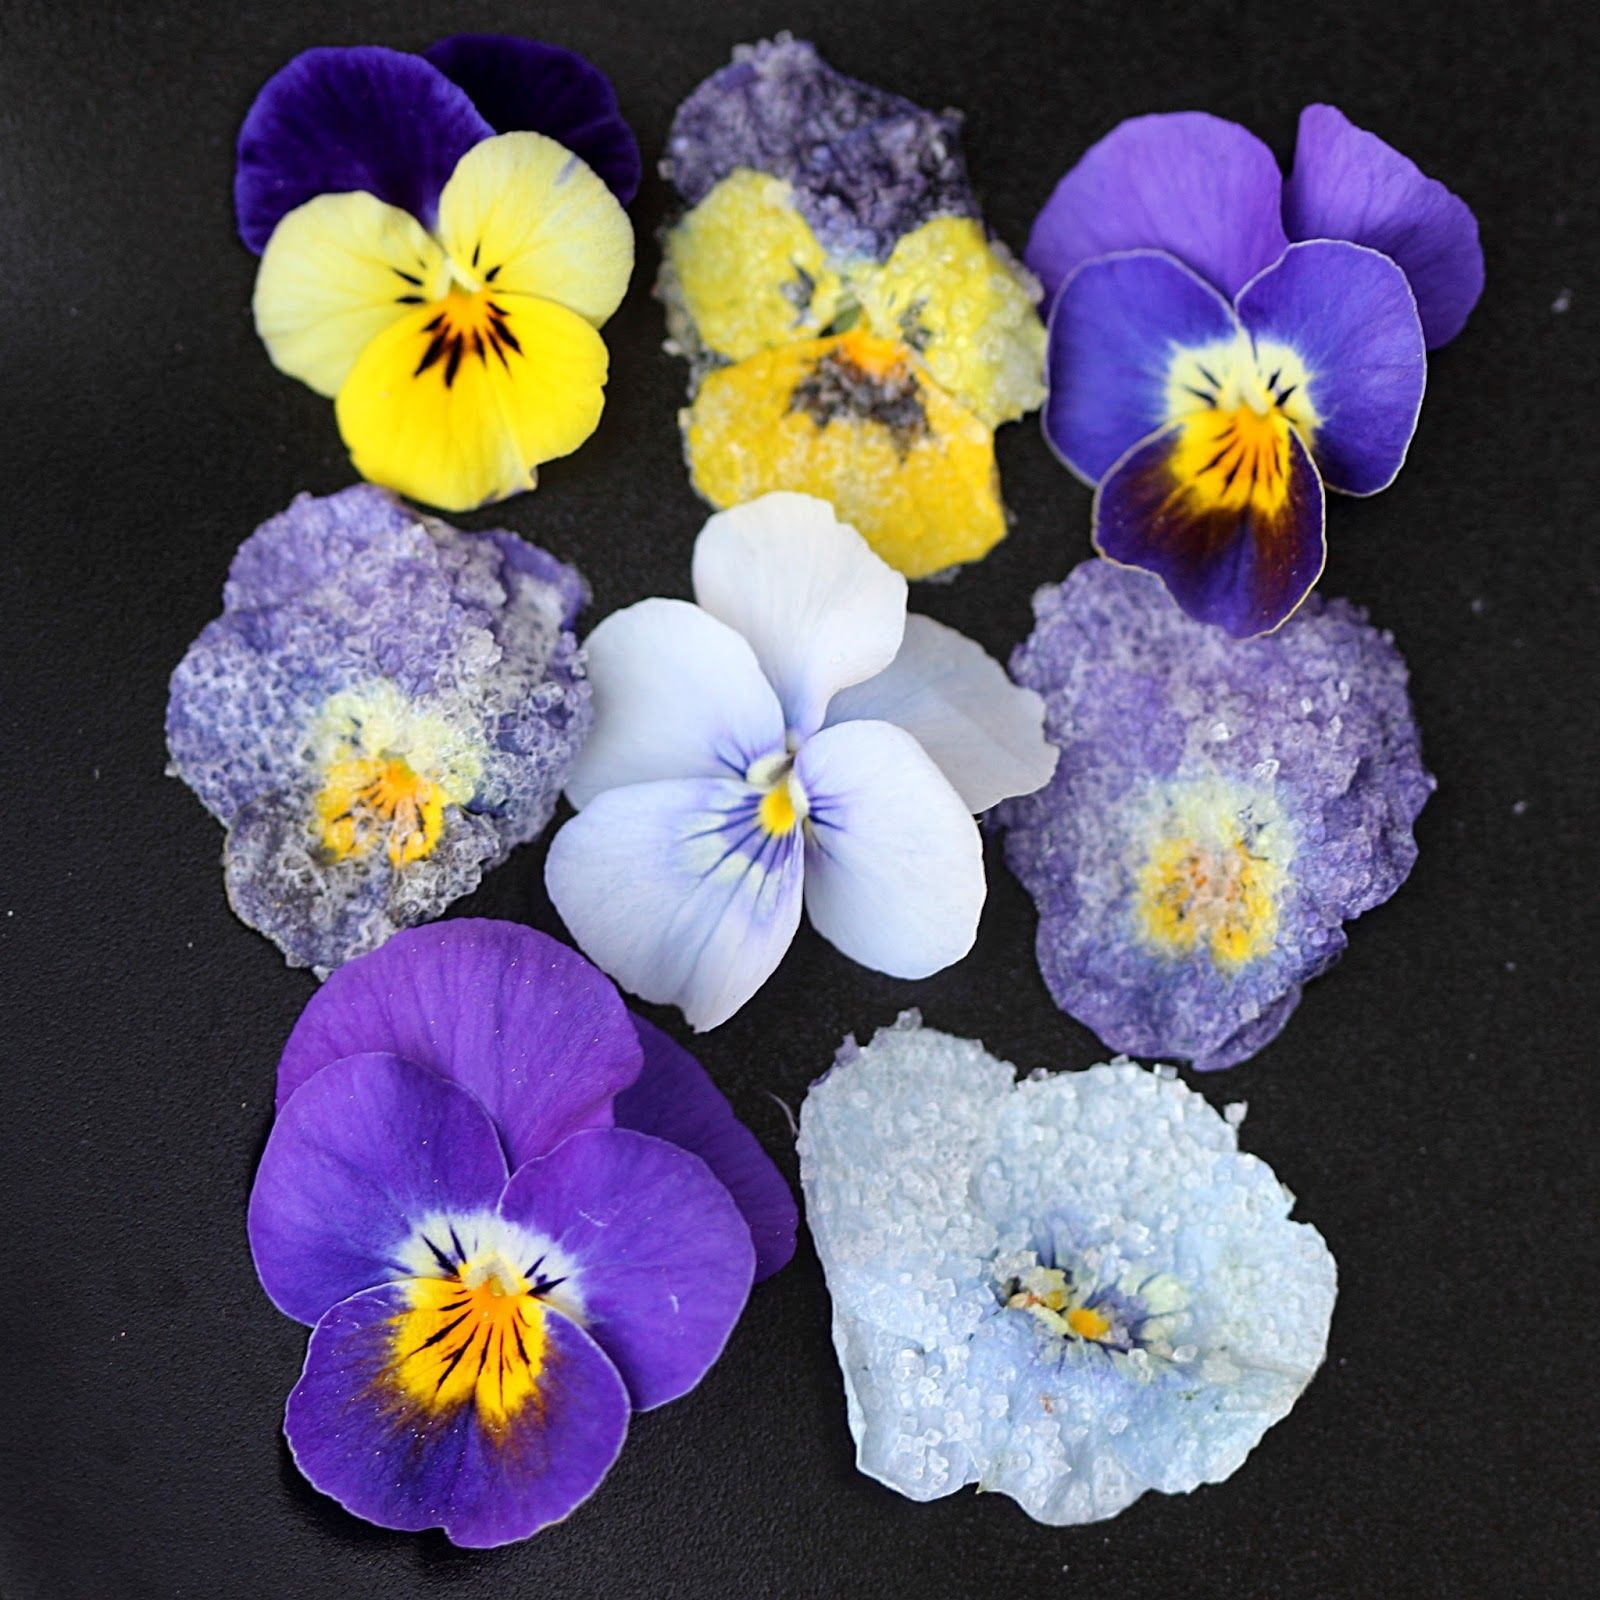 Crystallized violets cookingwithgifs edible cake